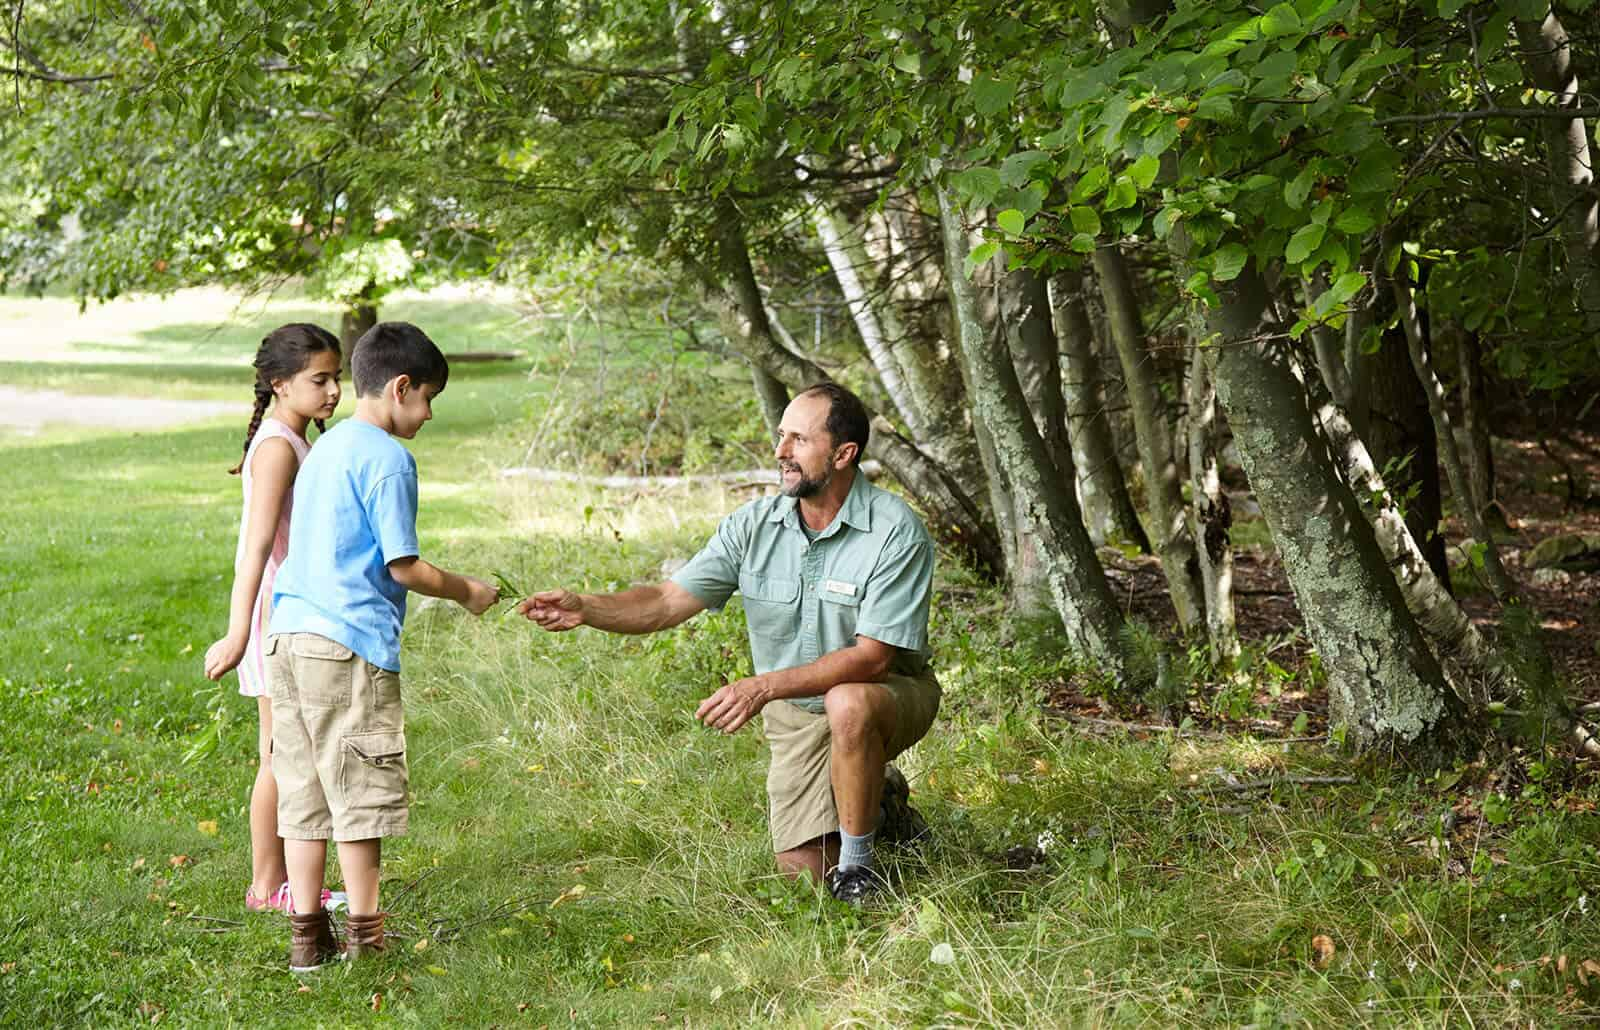 Naturalist showing plants to kids